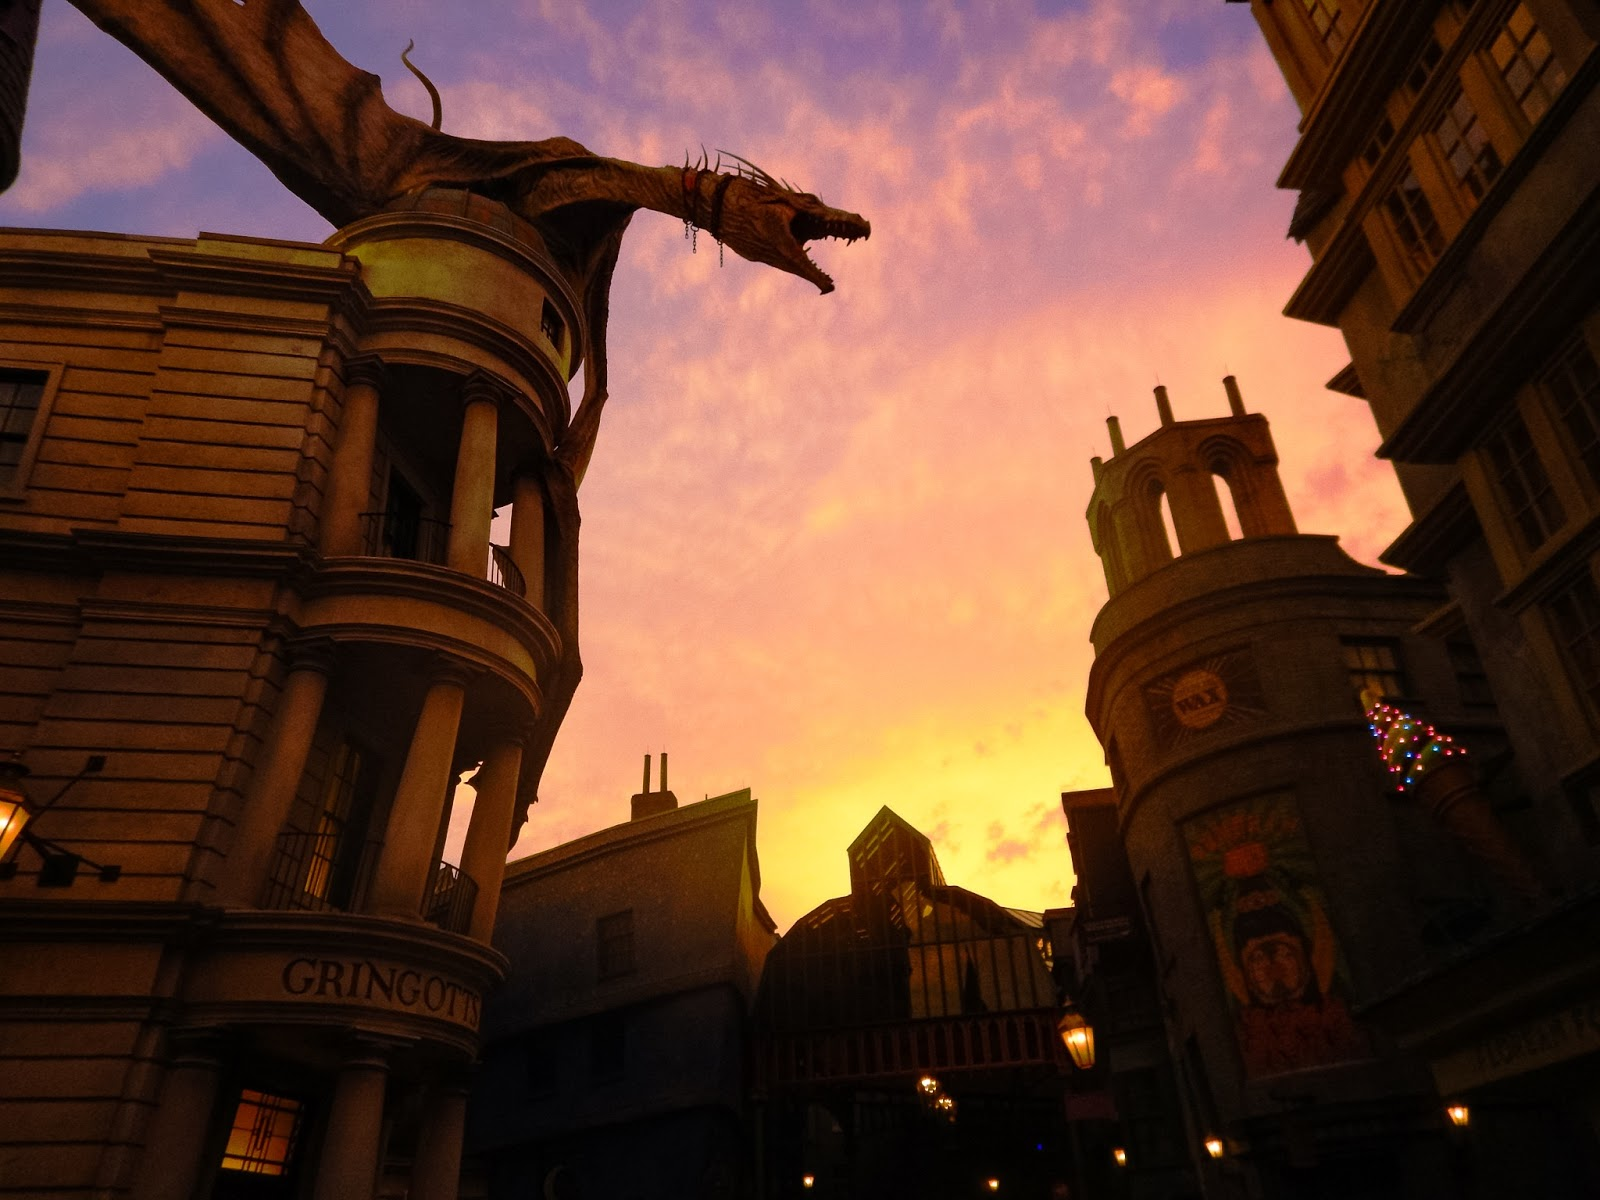 wizarding world of harry potter at sunset